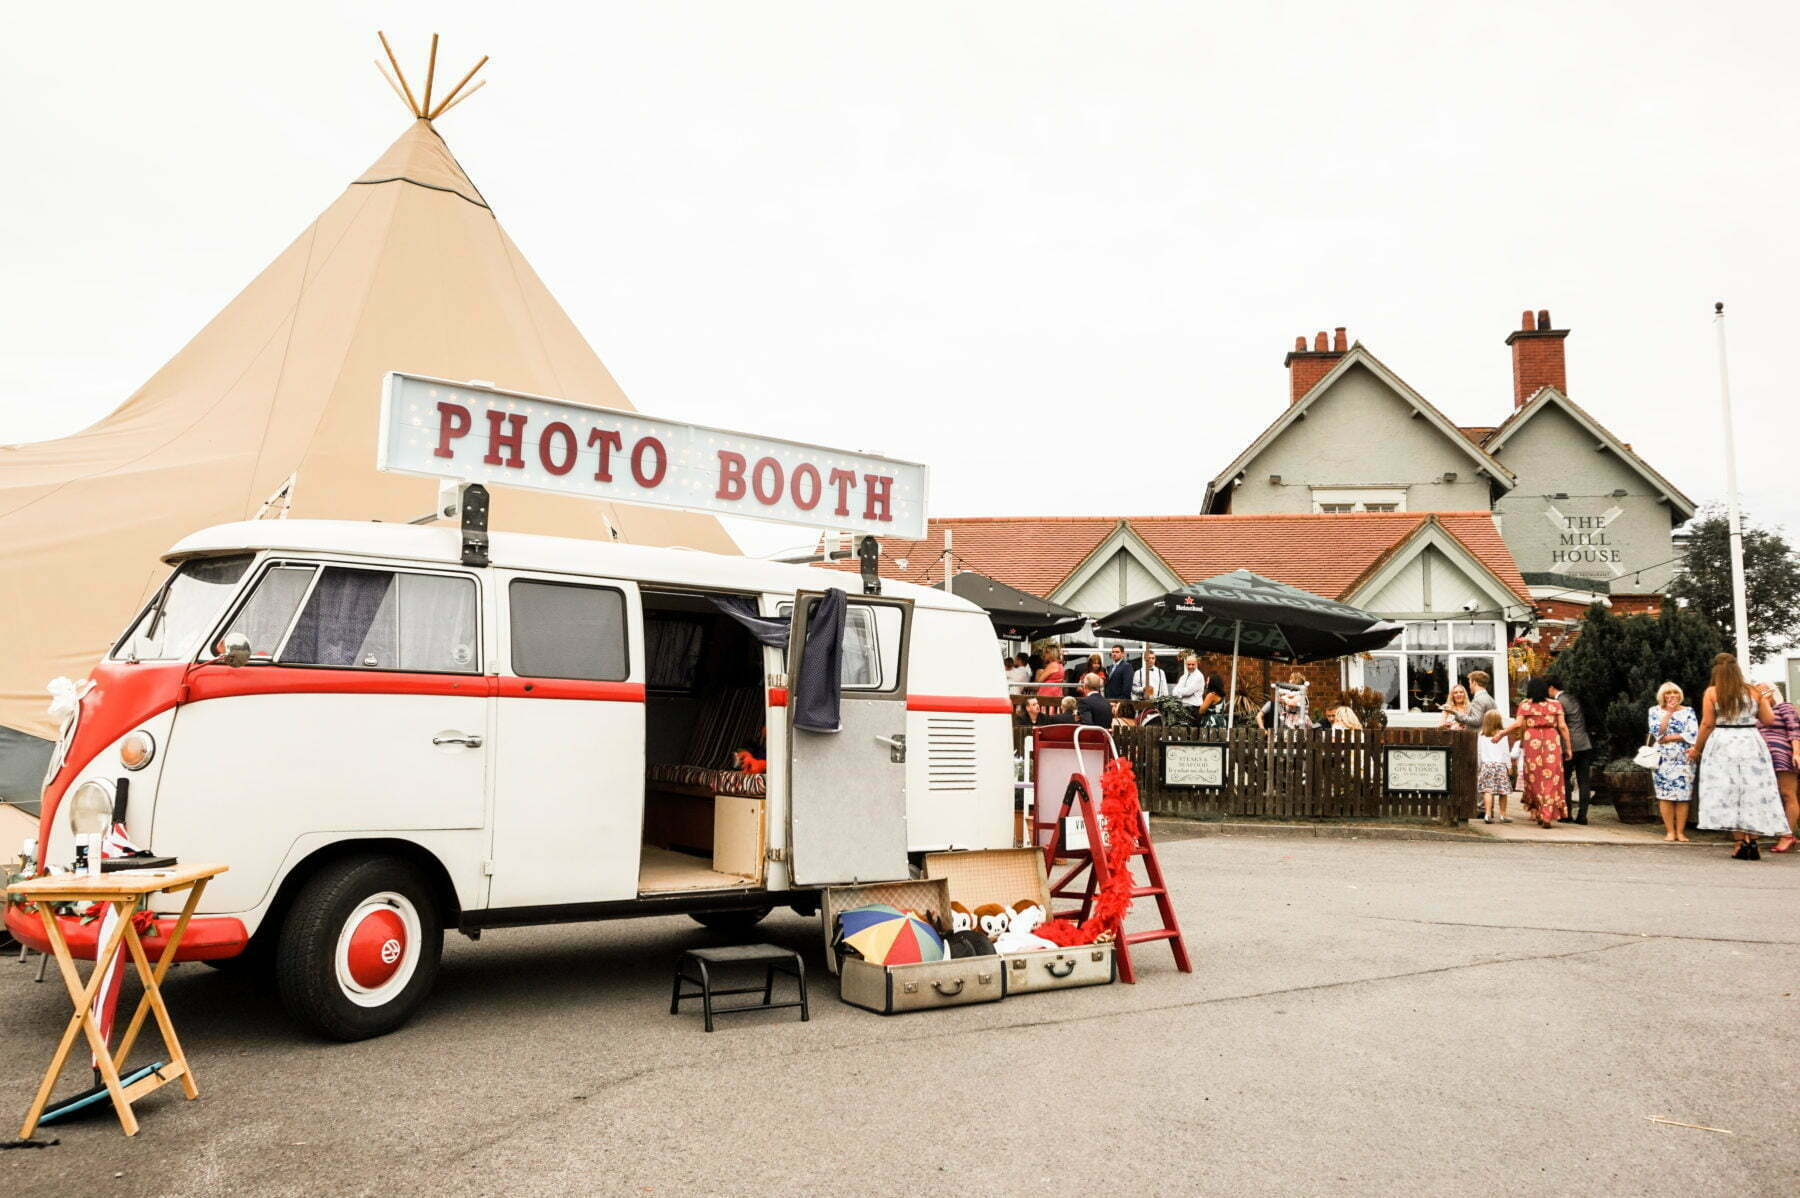 Split Screen VW Camper Wedding Photo Booth at Tipi Wedding Mill House Pub North East